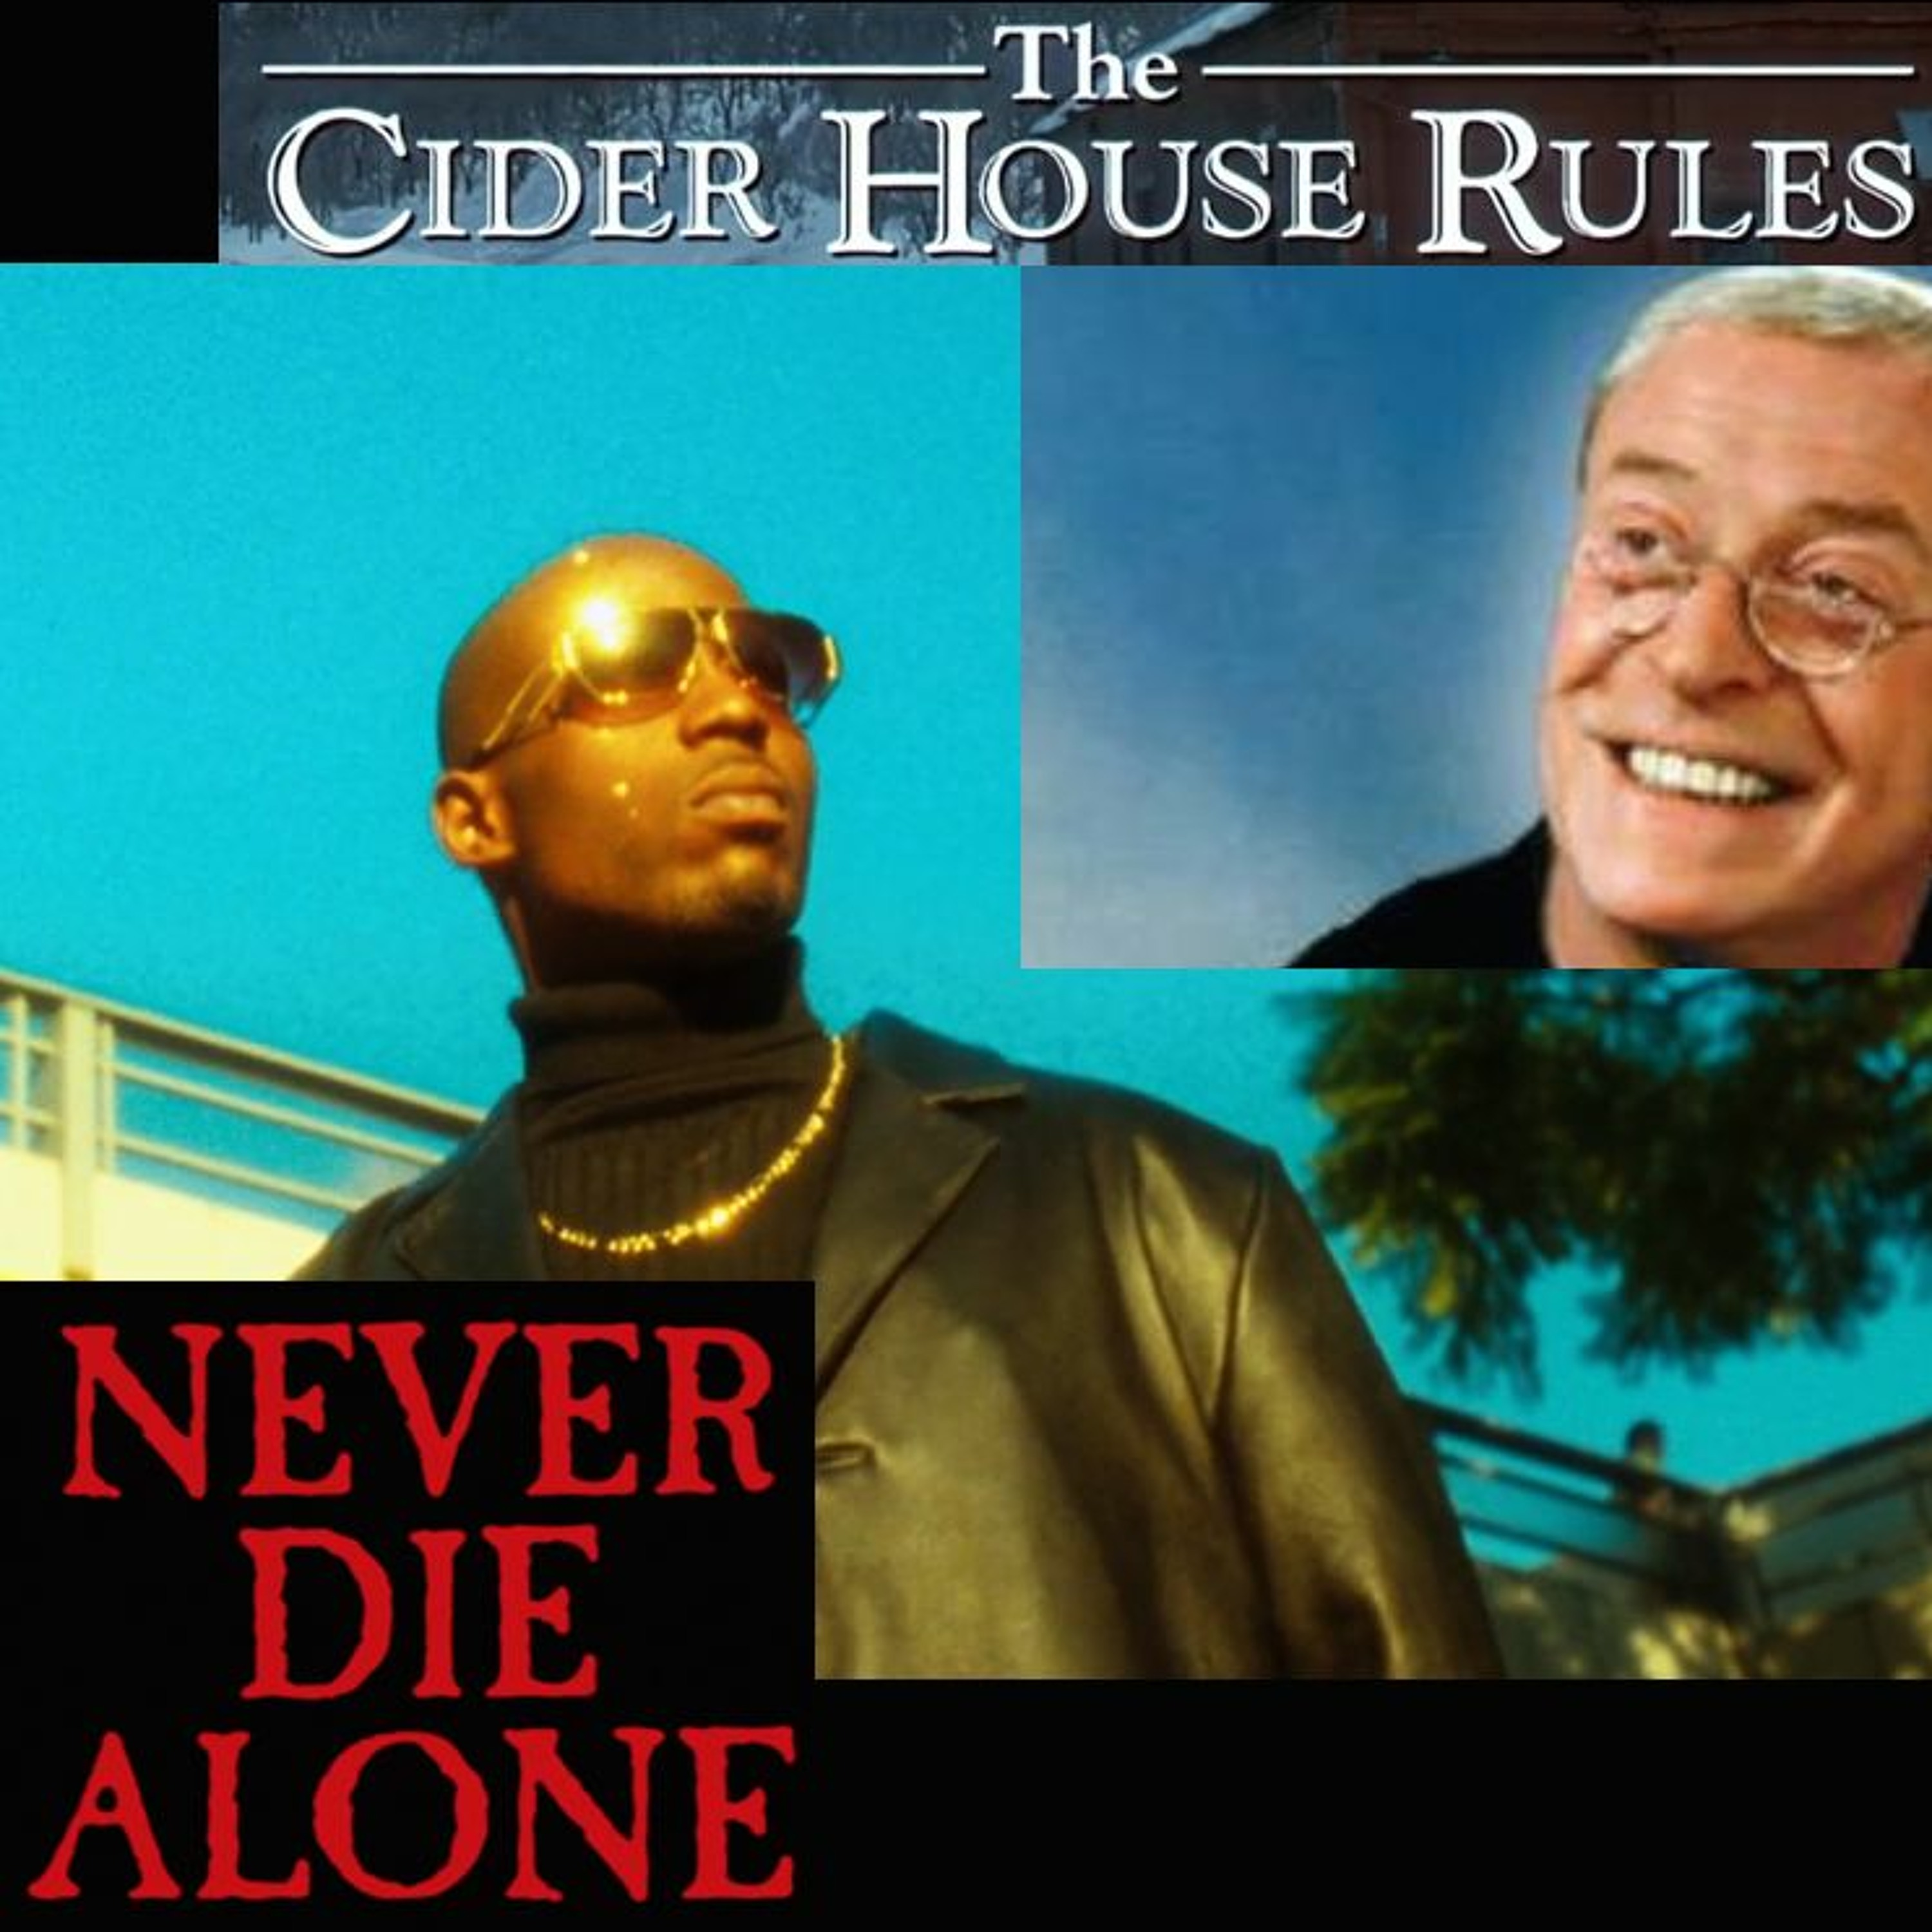 #101 - ciderhouse rules don't apply